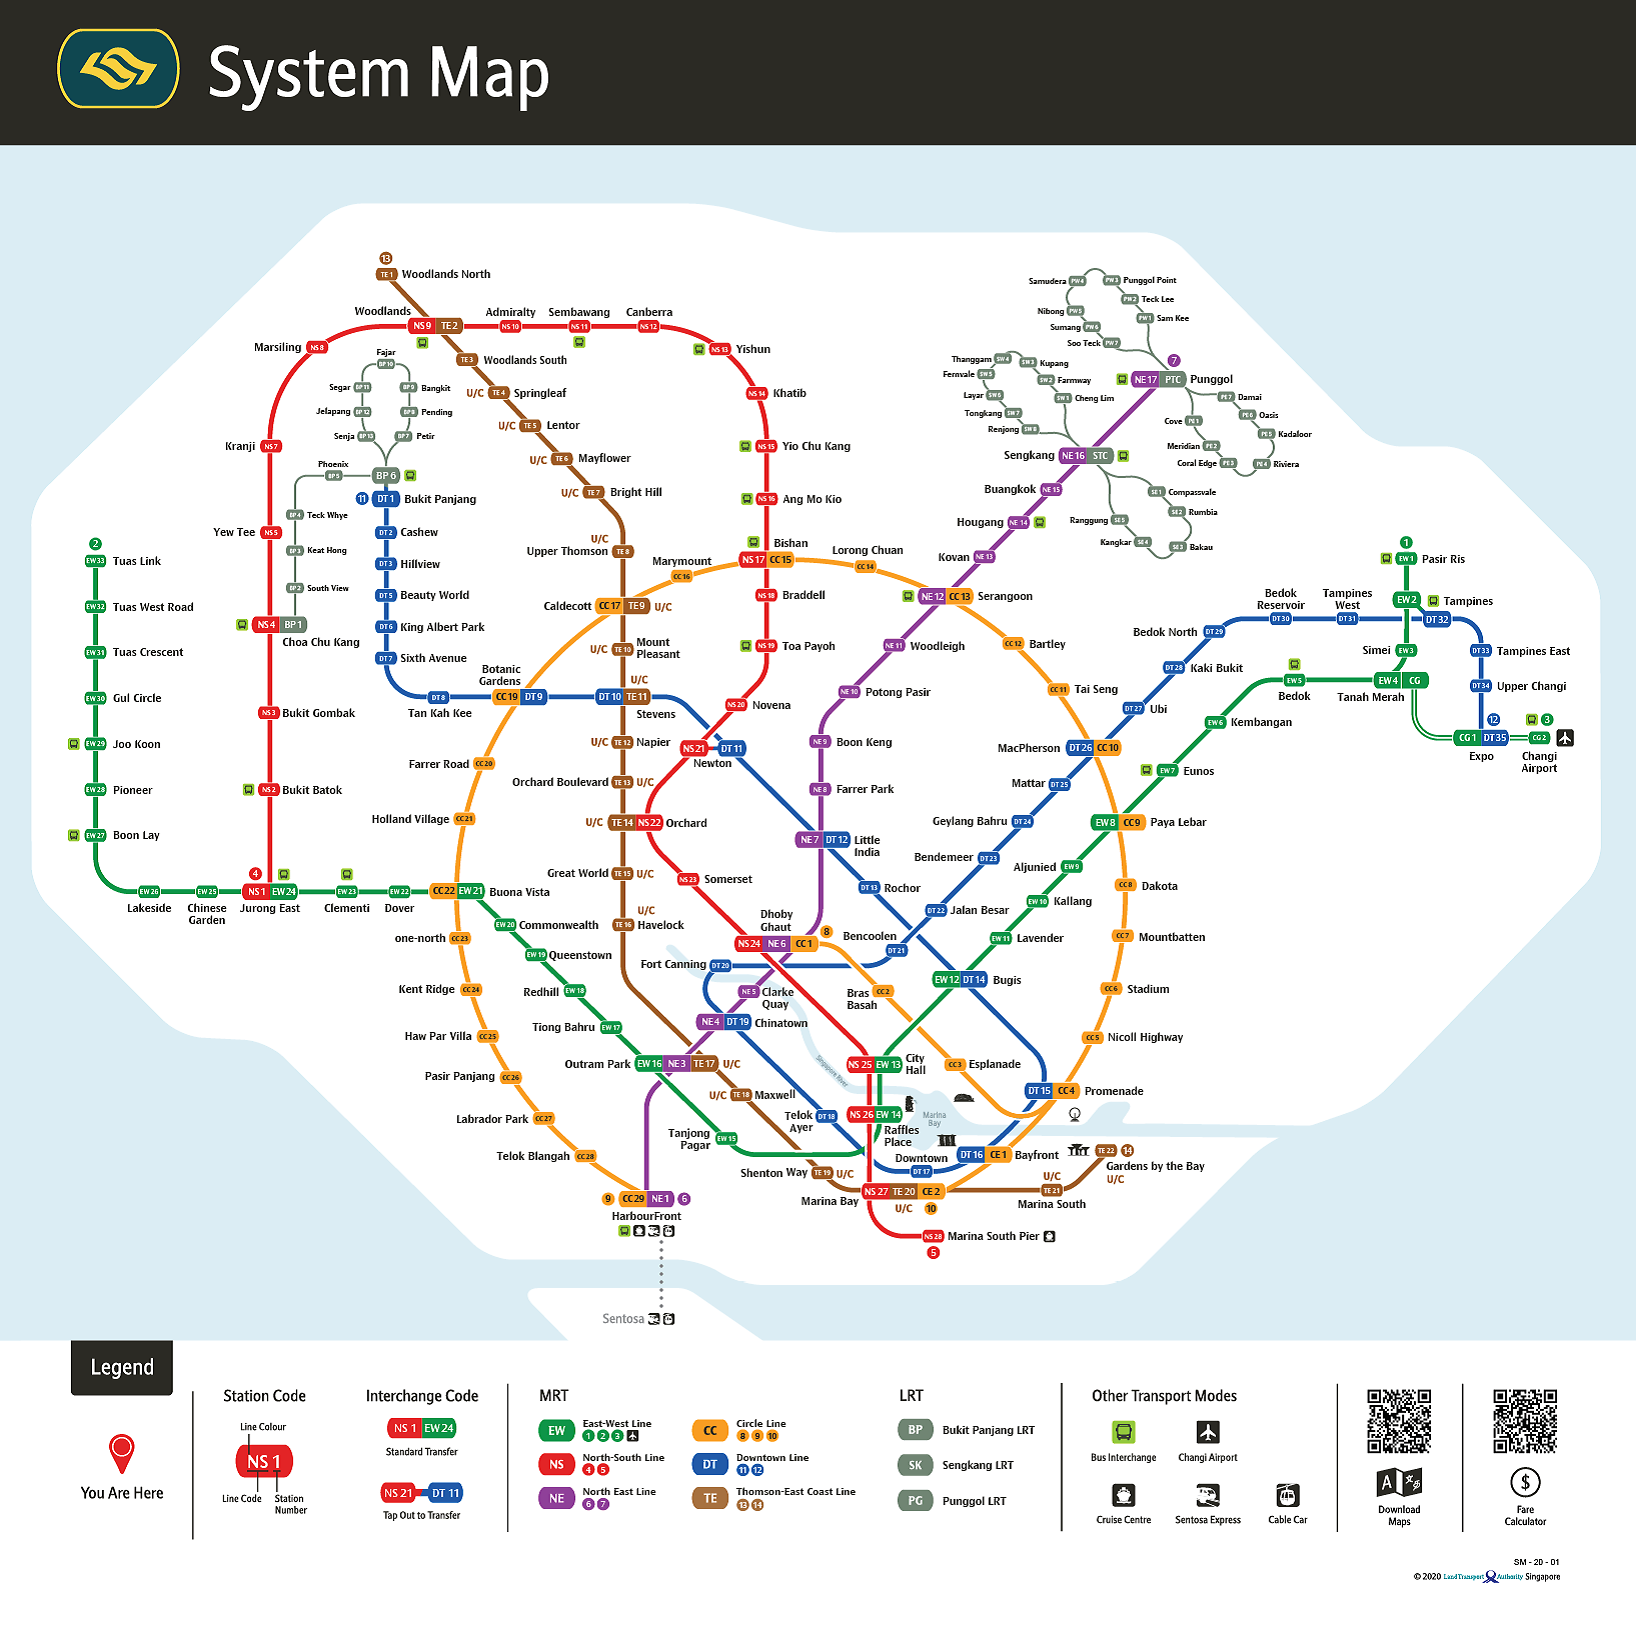 Everything About The New MRT Map That Finally Has A Circle On The Circle Line